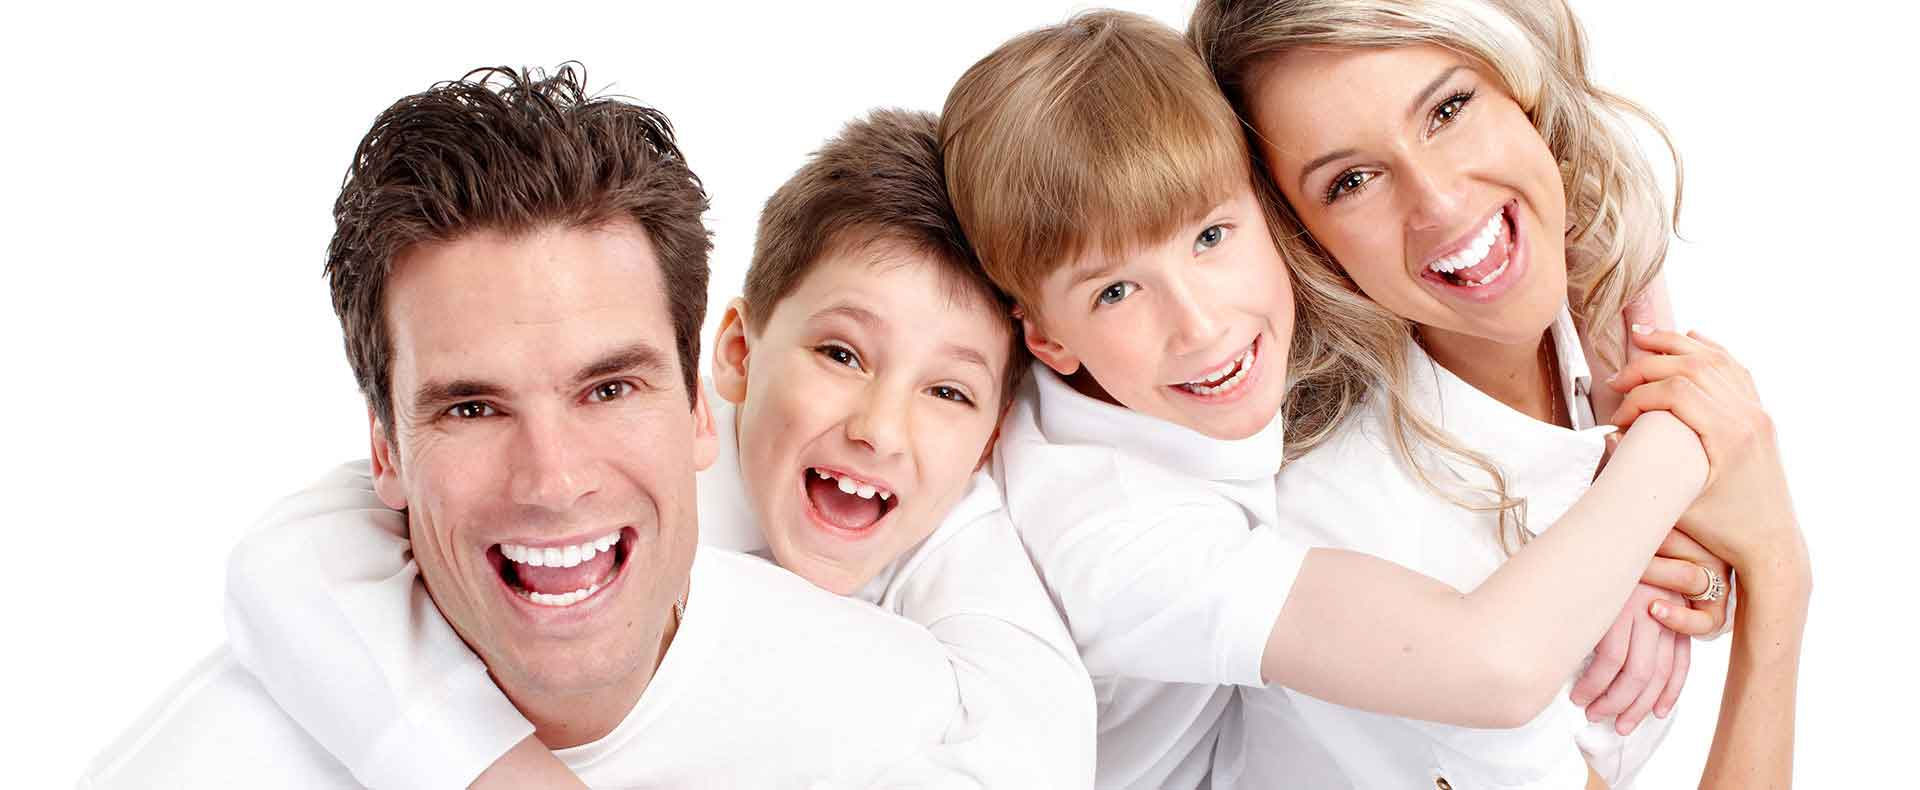 Stefanie Litsch Orthodontics for the whole family